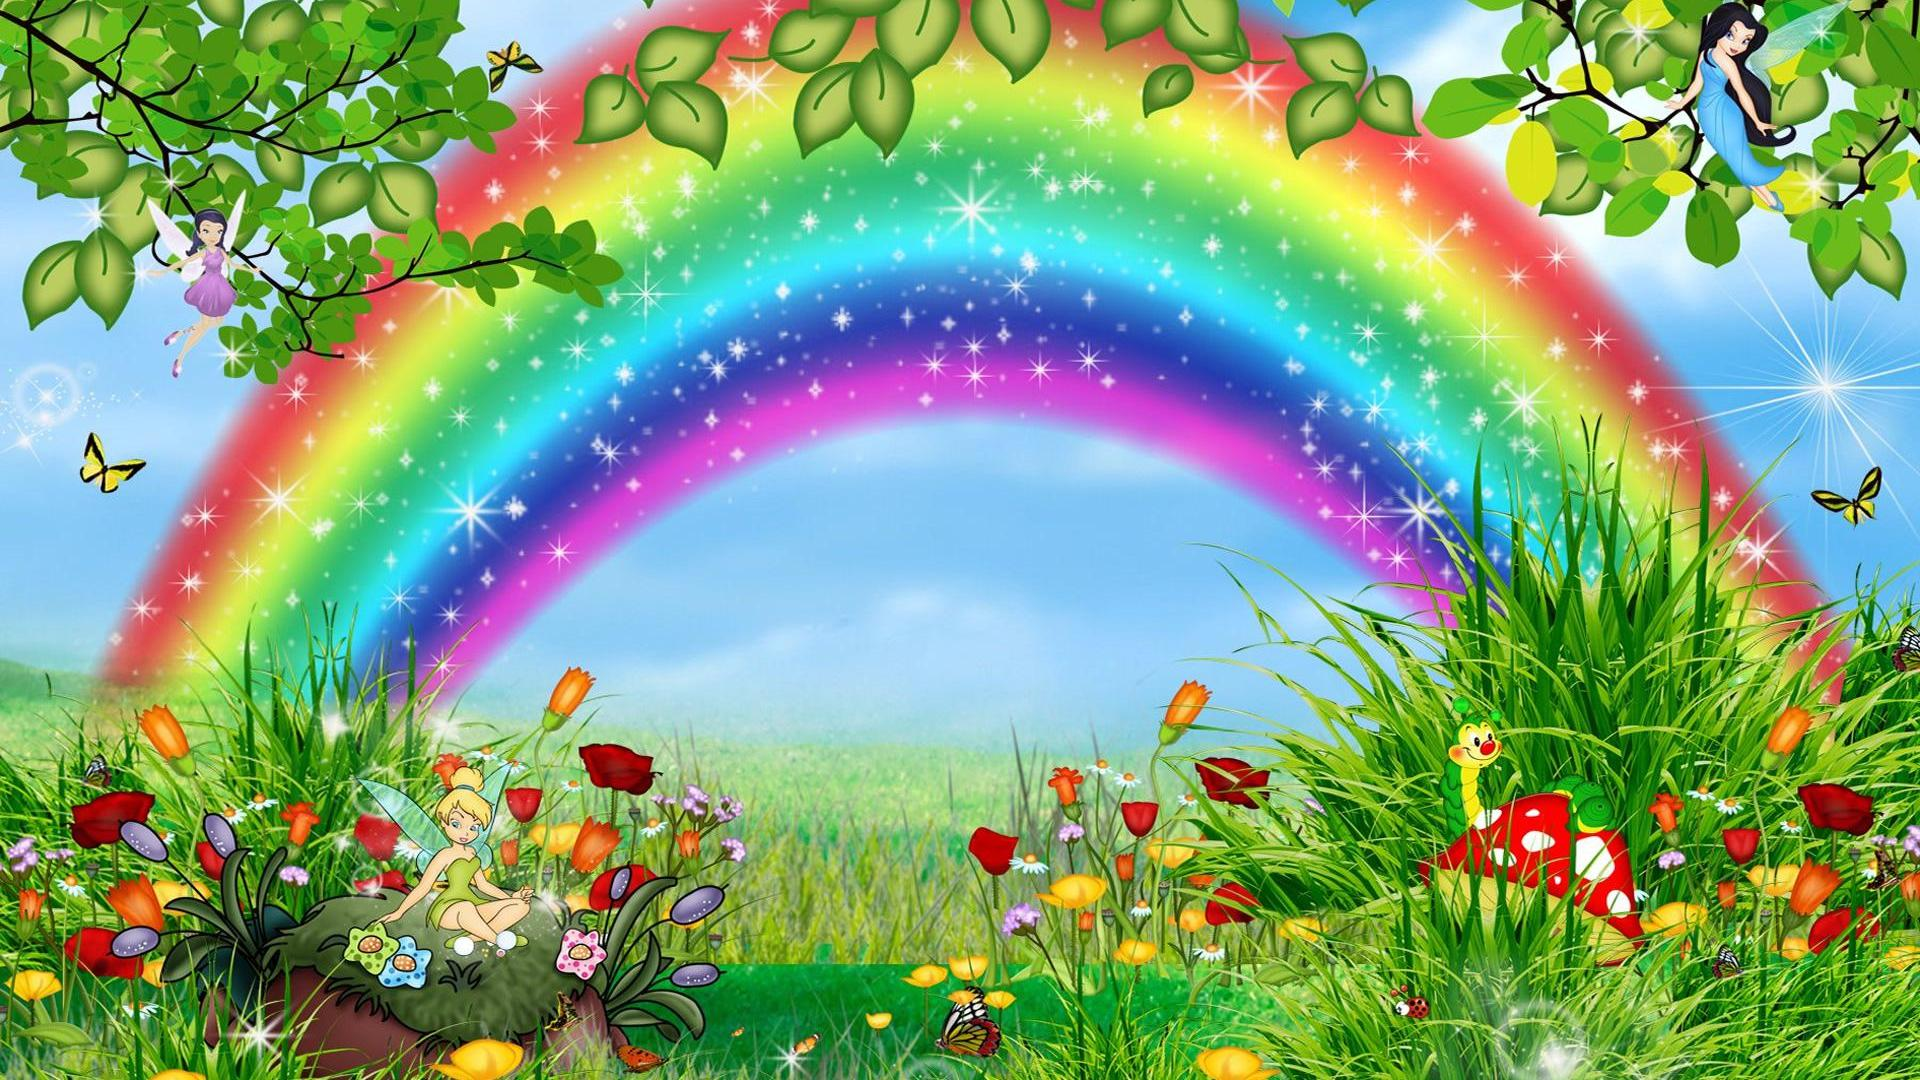 rainbow hd wallpapers - wallpaper, high definition, high quality